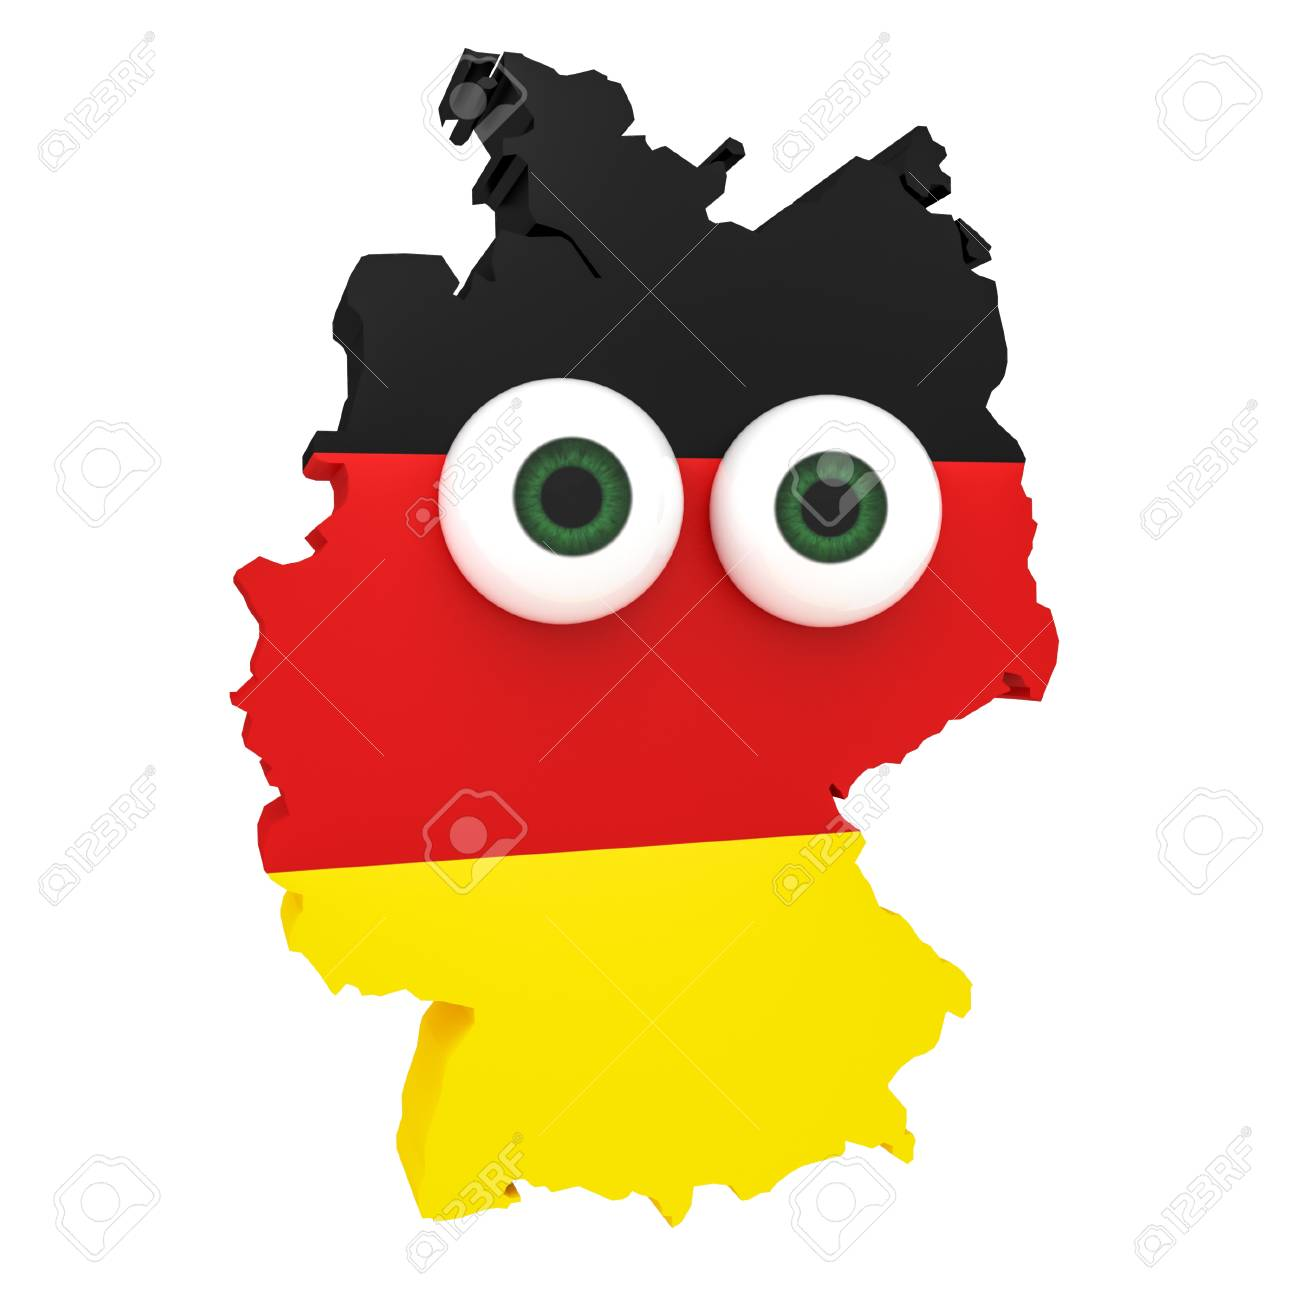 Stock Illustration on german flags of the world, germany map, state flags map, rhine river map, england map, german stereotypes, german world war 1 map, german state flags,